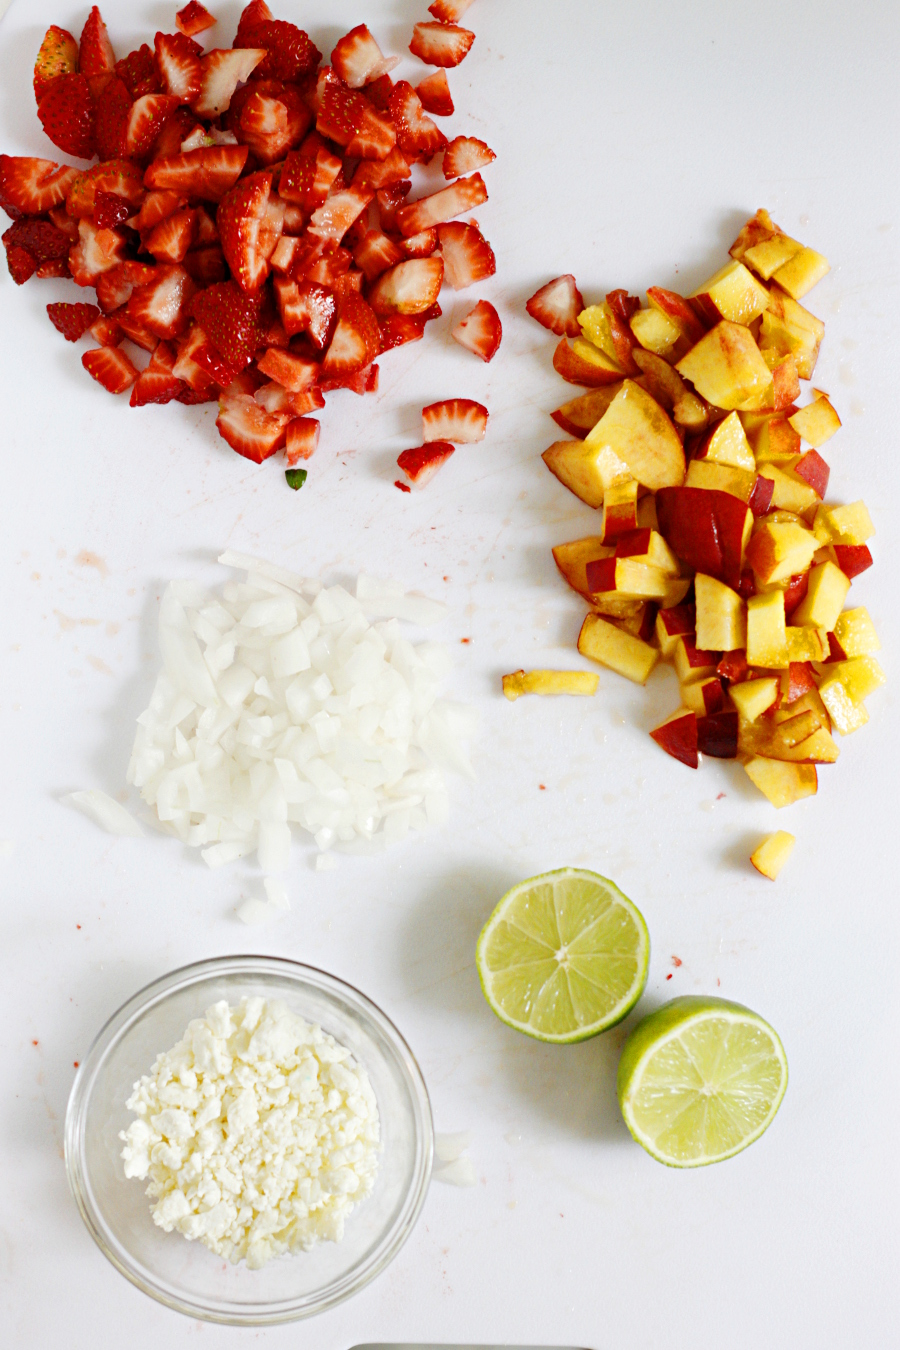 Strawberry and Peach Guacamole